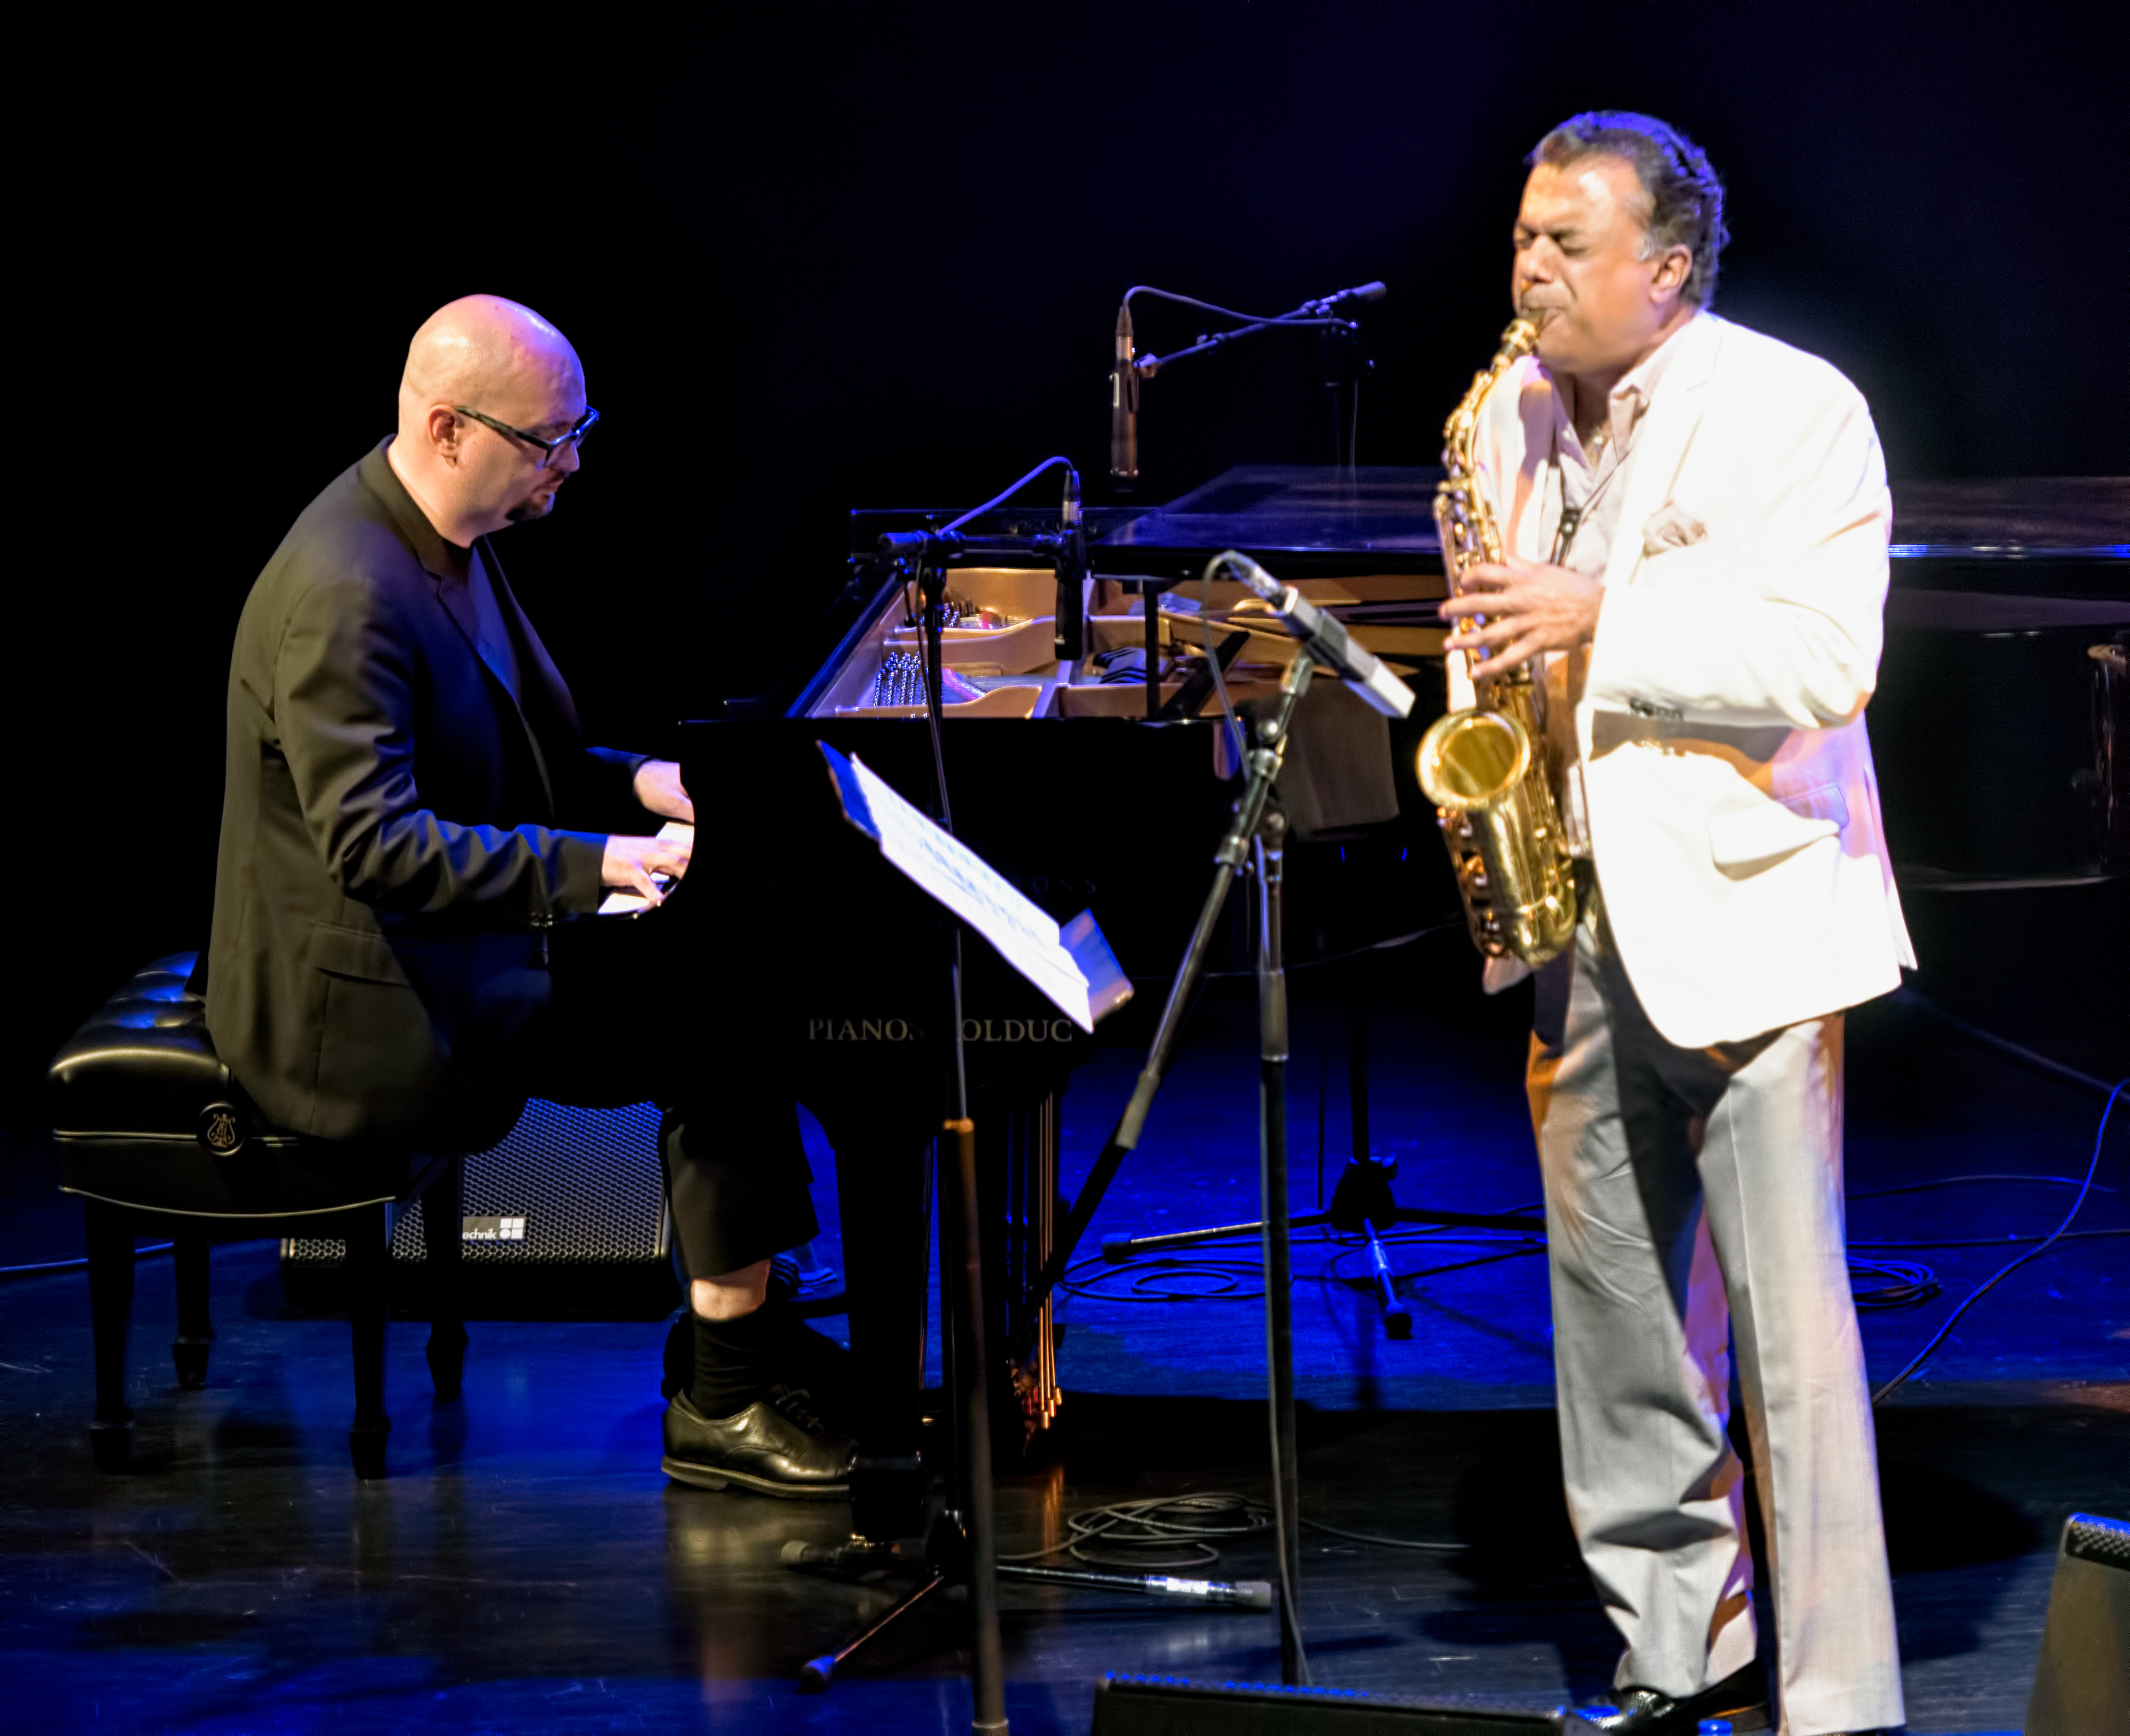 Ethan Iverson and Rudresh Mahanthappa with the Bad Plus at The Montreal International Jazz Festival 2017